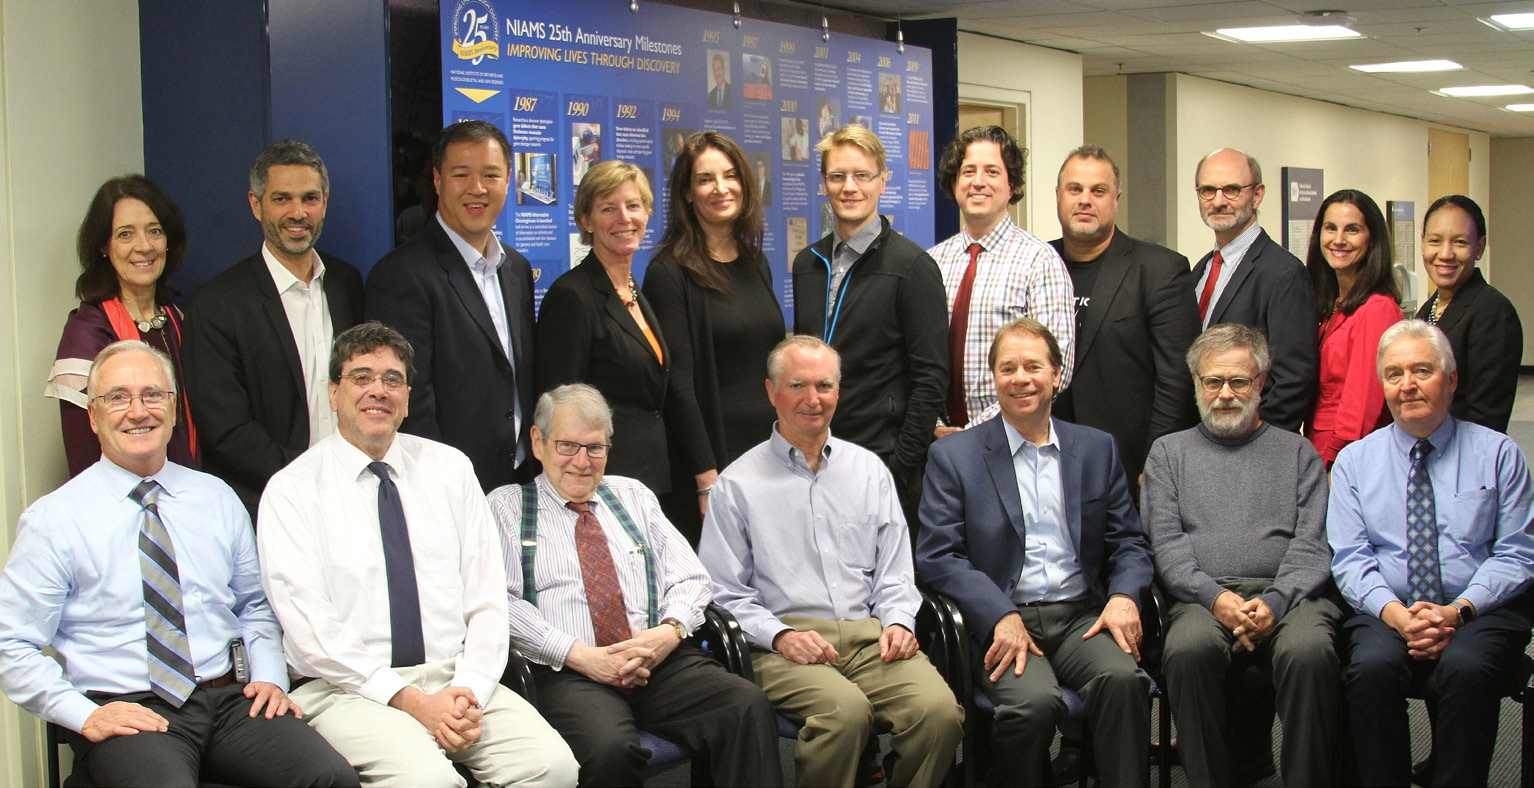 Roundtable participants included NIAMS director Dr. Stephen Katz (seated, third from l)